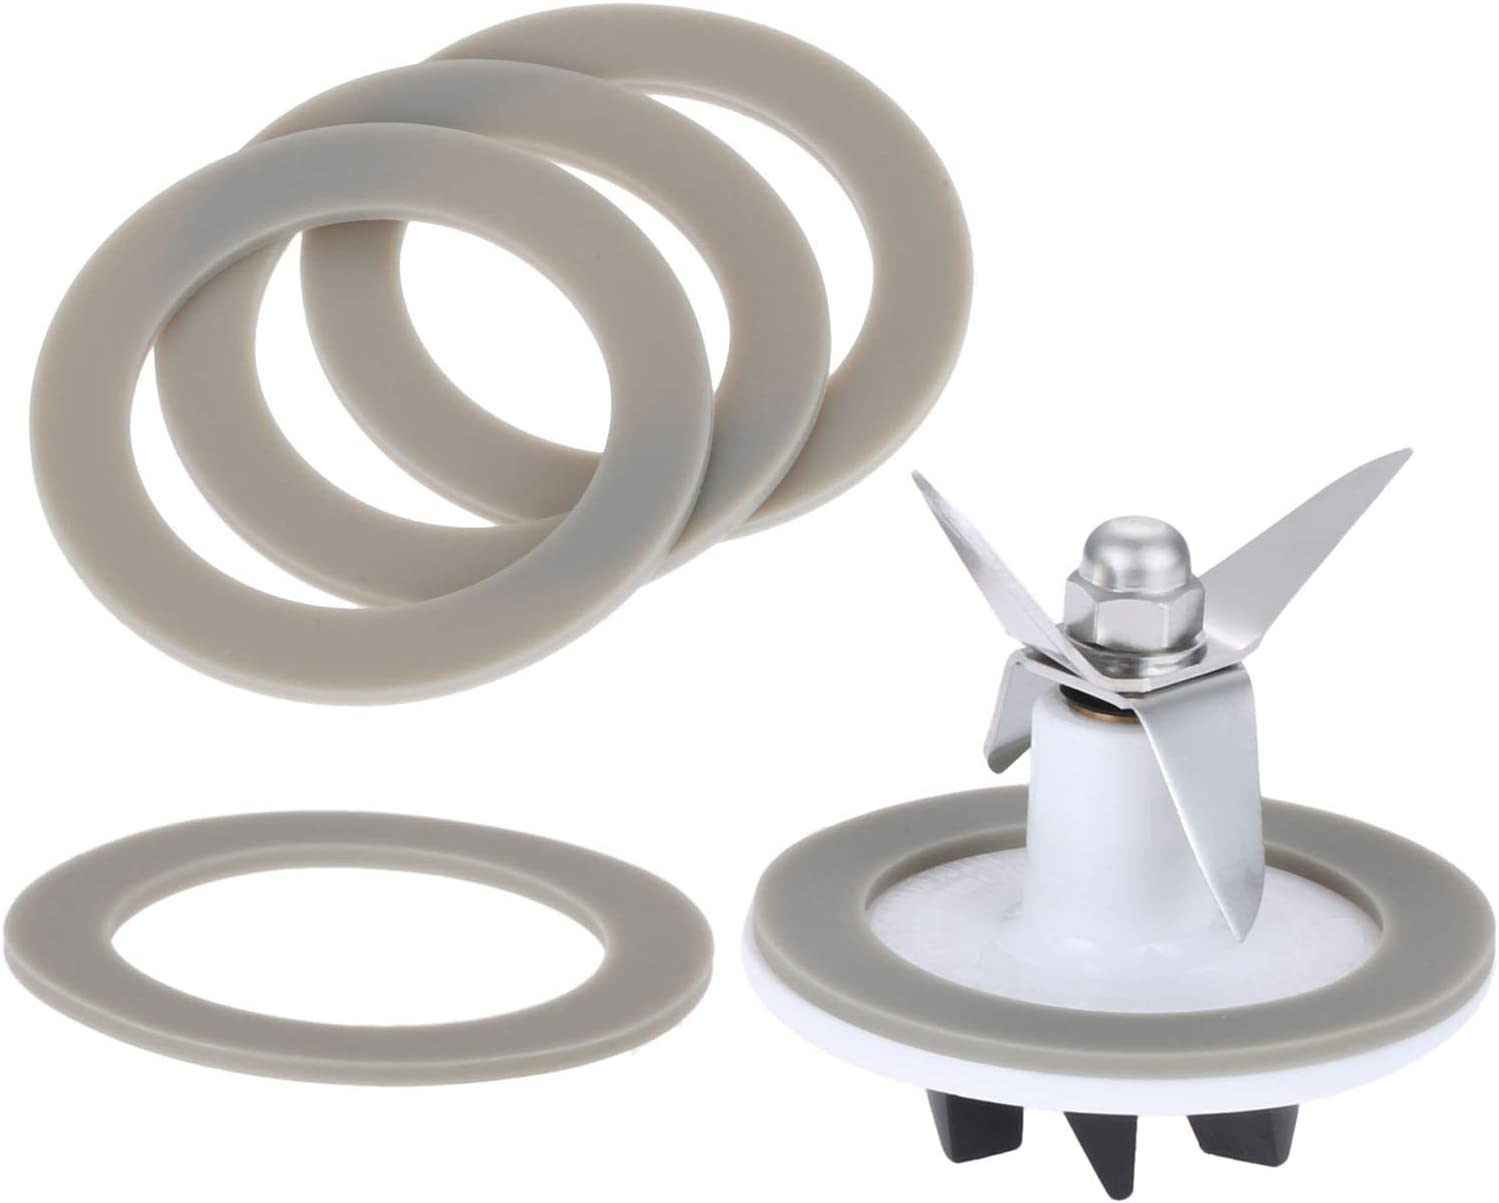 SPB-456-2 White Blade Cutting Cutter with 5 Rubber Sealing Gasket Seal O-ring, Replacement for Cuisinart Blenders Models # BFP703 BFP-703 BFP703B BFP-703CH SPB7 SPB-7BK CB8 CB9 BFP-703